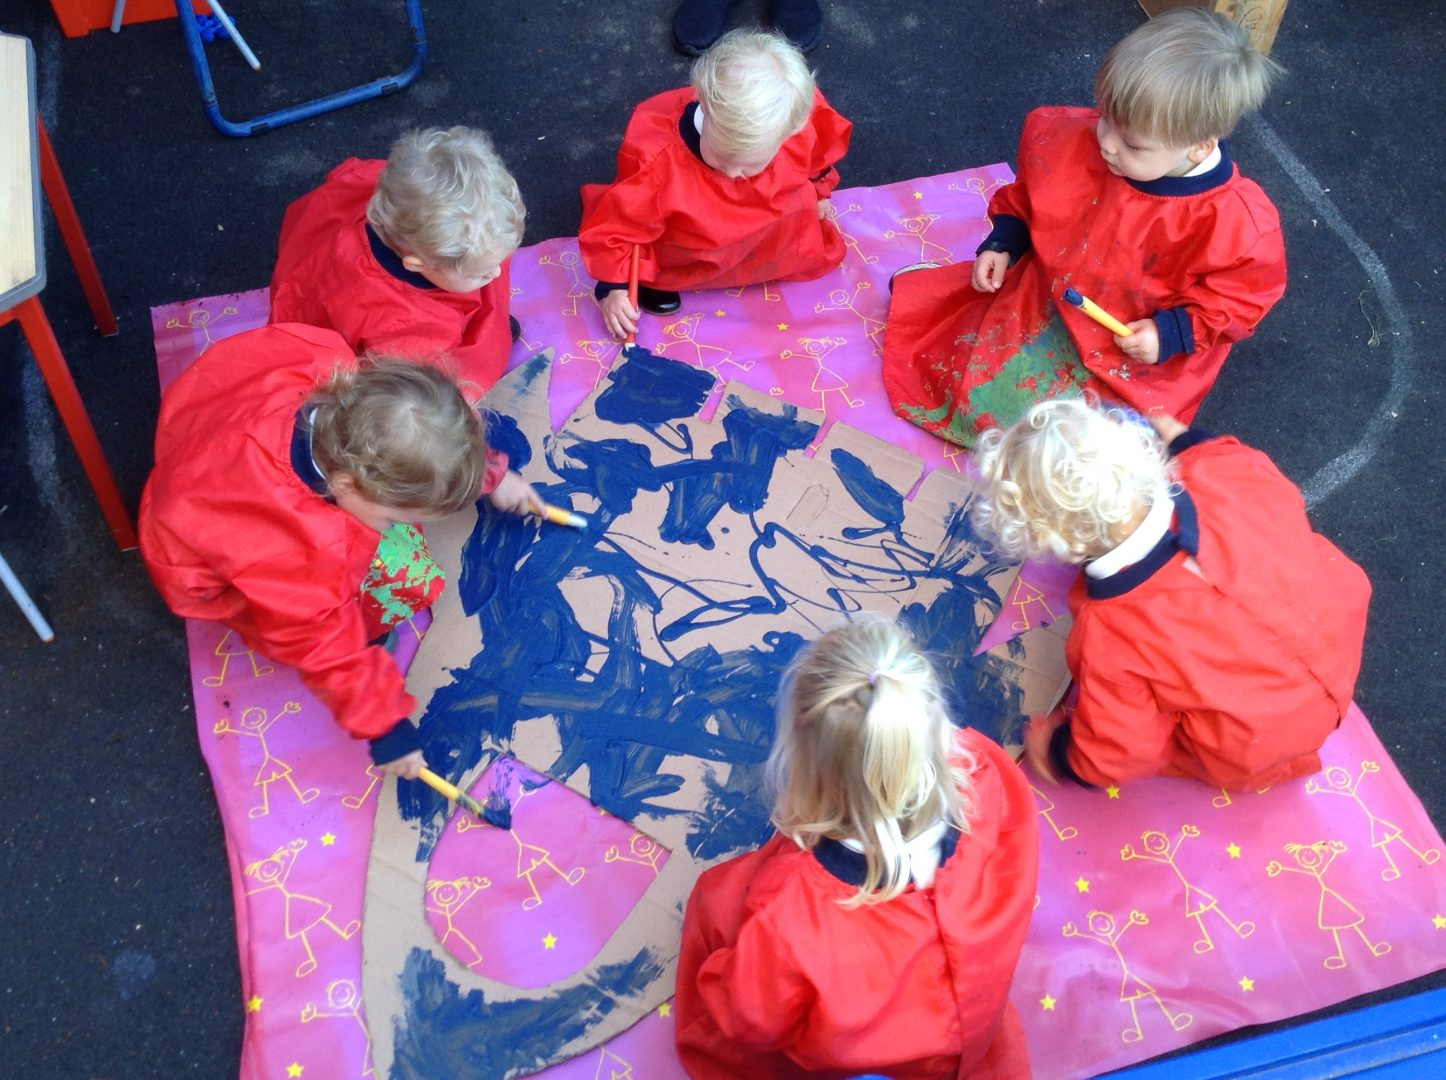 Ashtead pupils enjoy painting on the ground